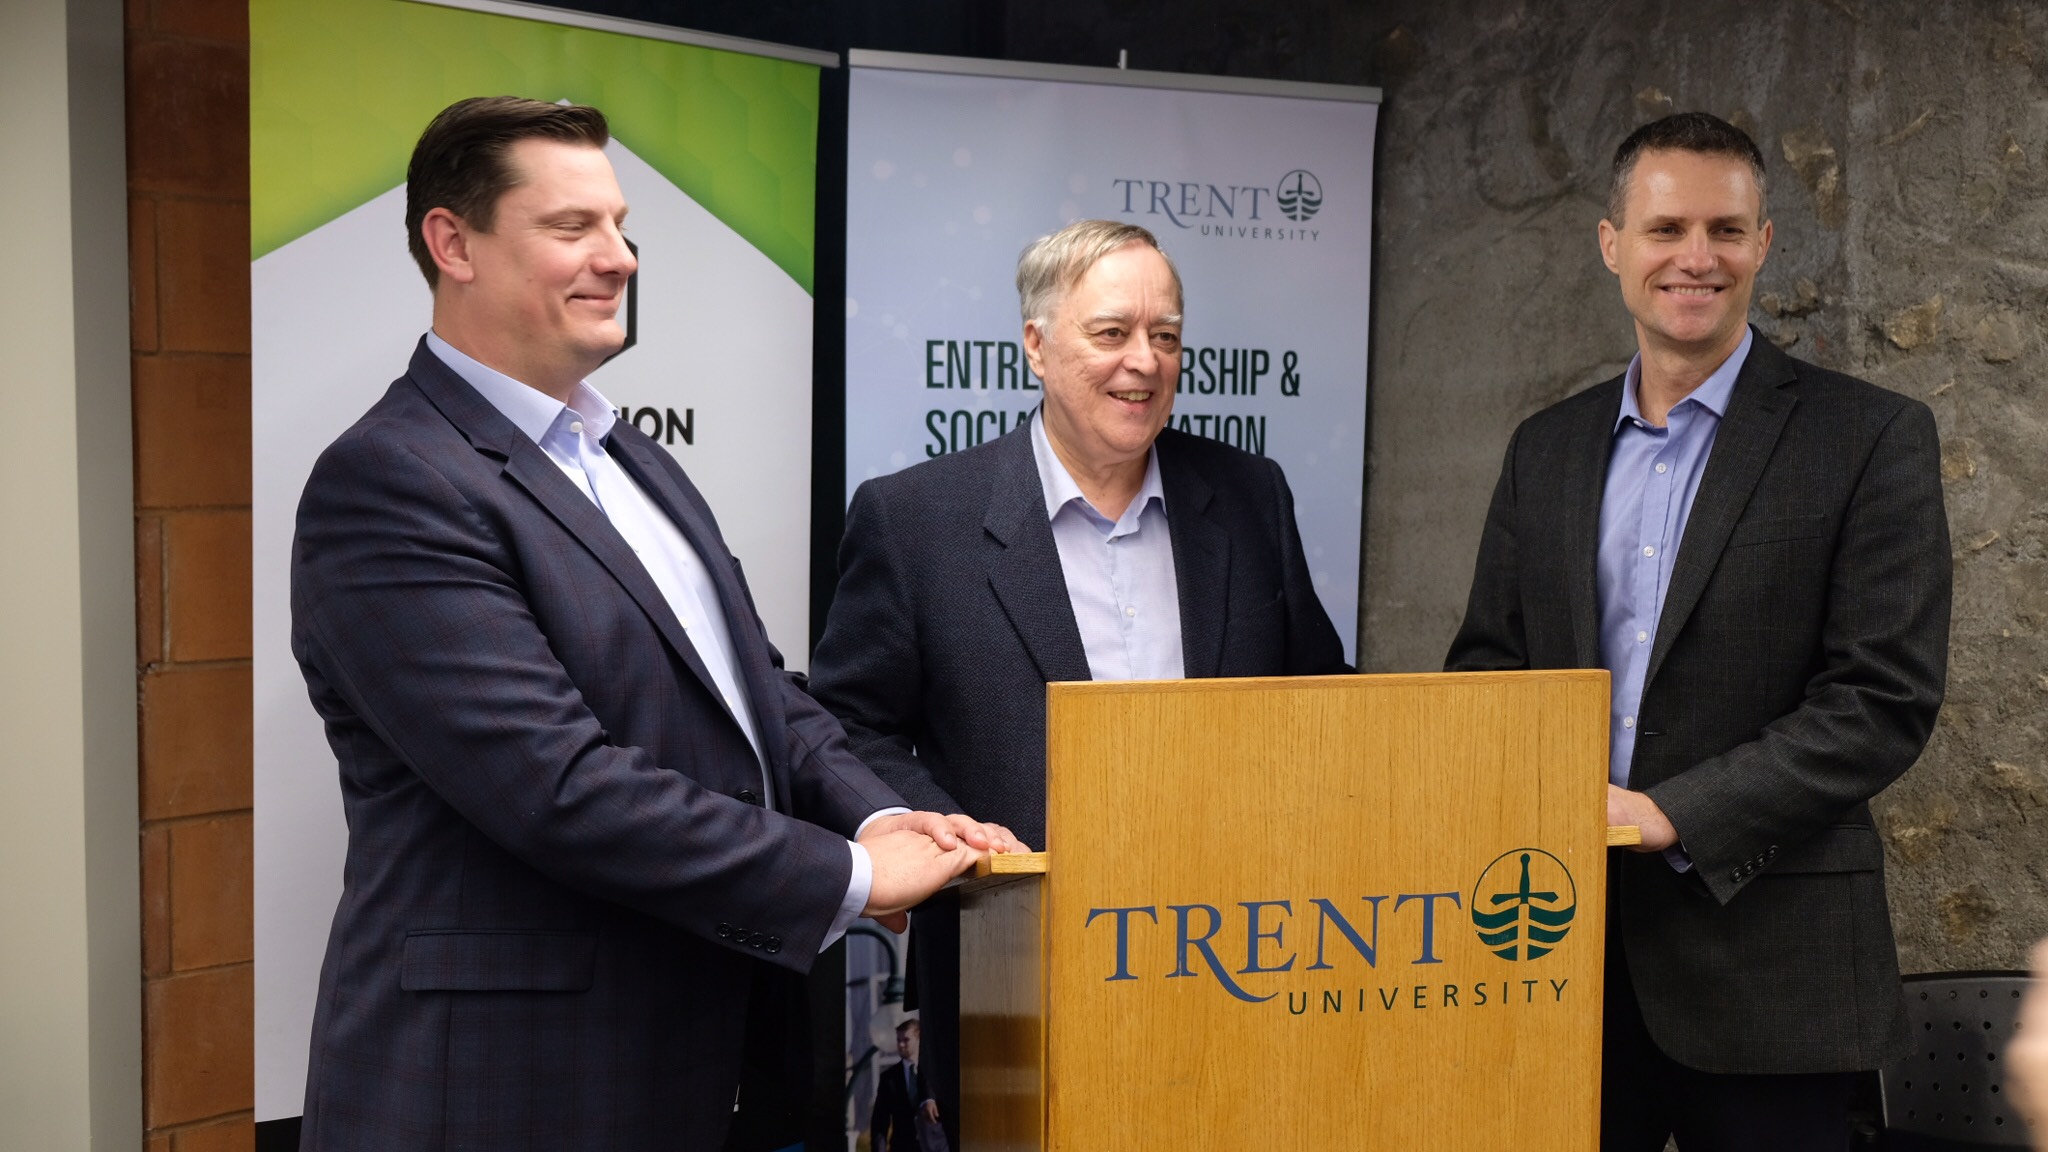 Innovation Cluster and Trent University Celebrate New Entrepreneurship & Social Innovation Centre With Open House and Event Announcement